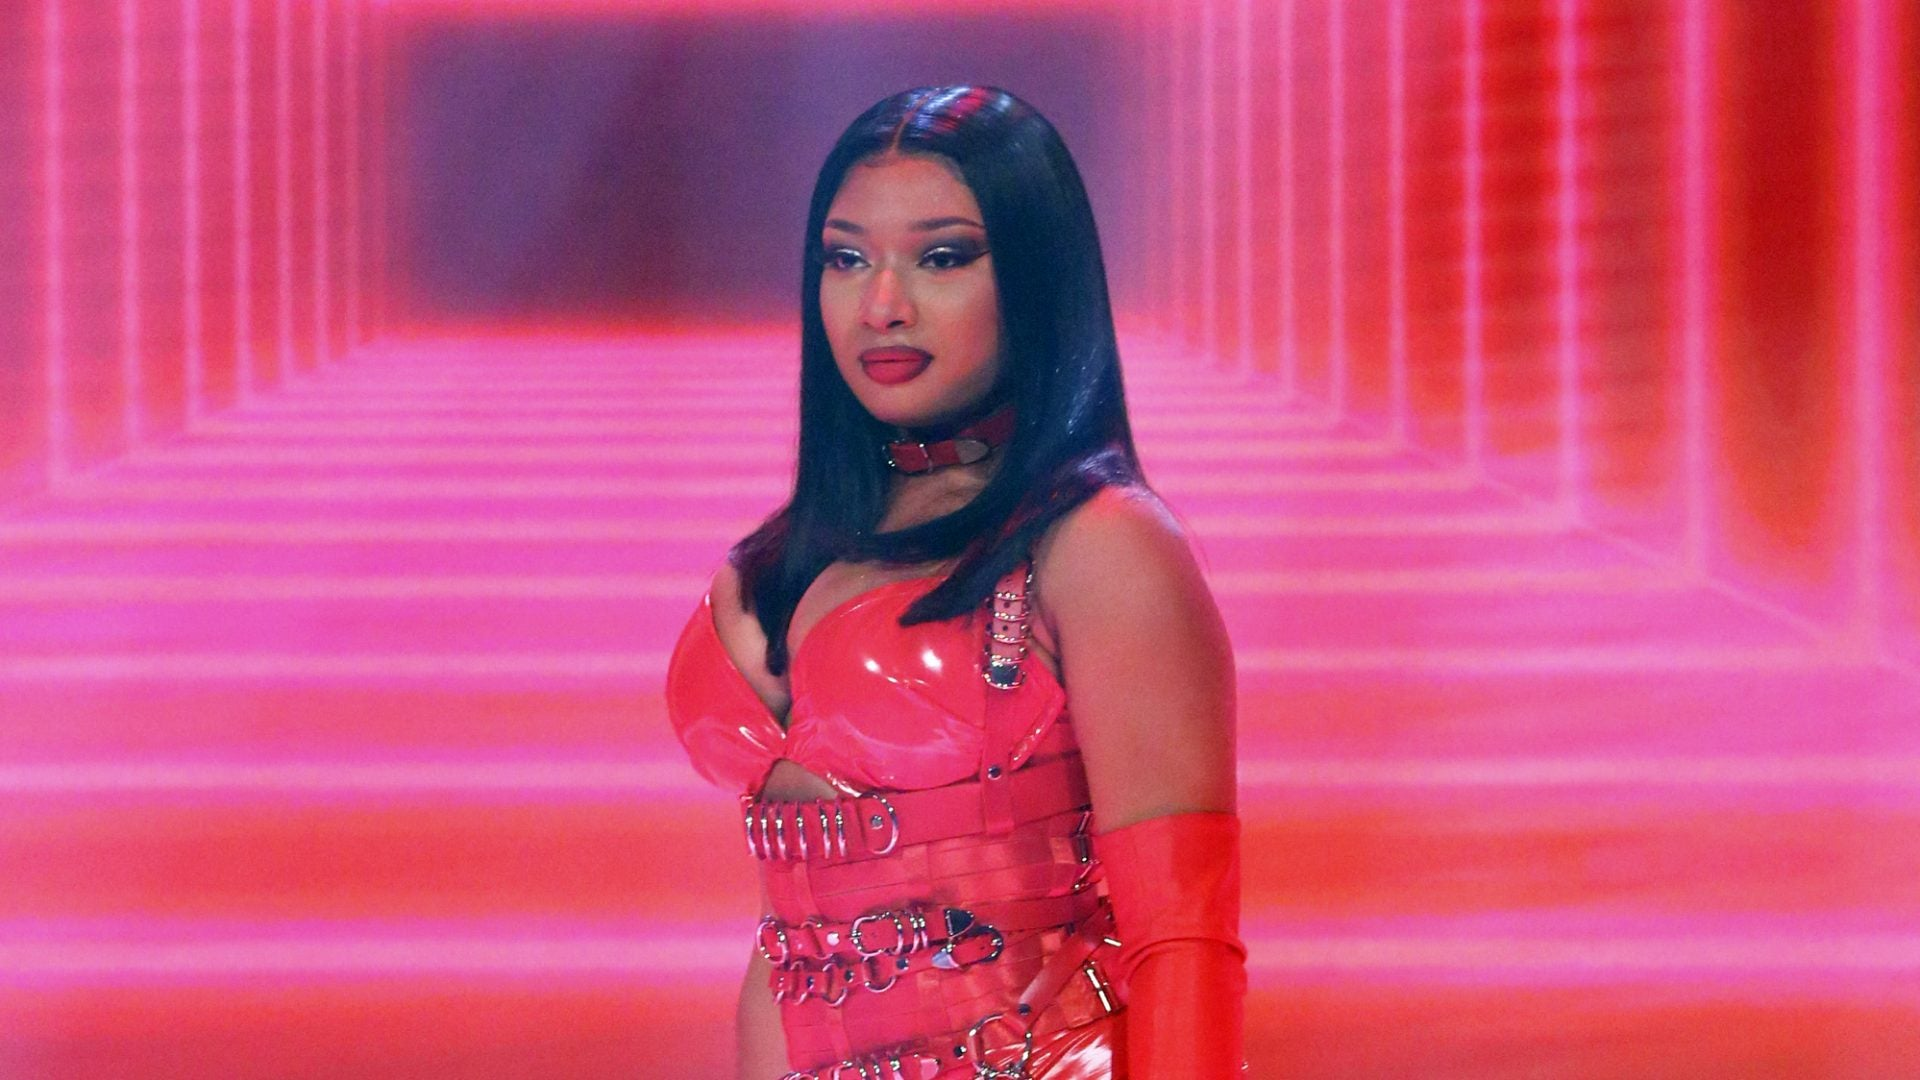 megan-thee-stallion-reveals-she-is-in-a-relationship-i-got-a-man-and-he-is-so-fine